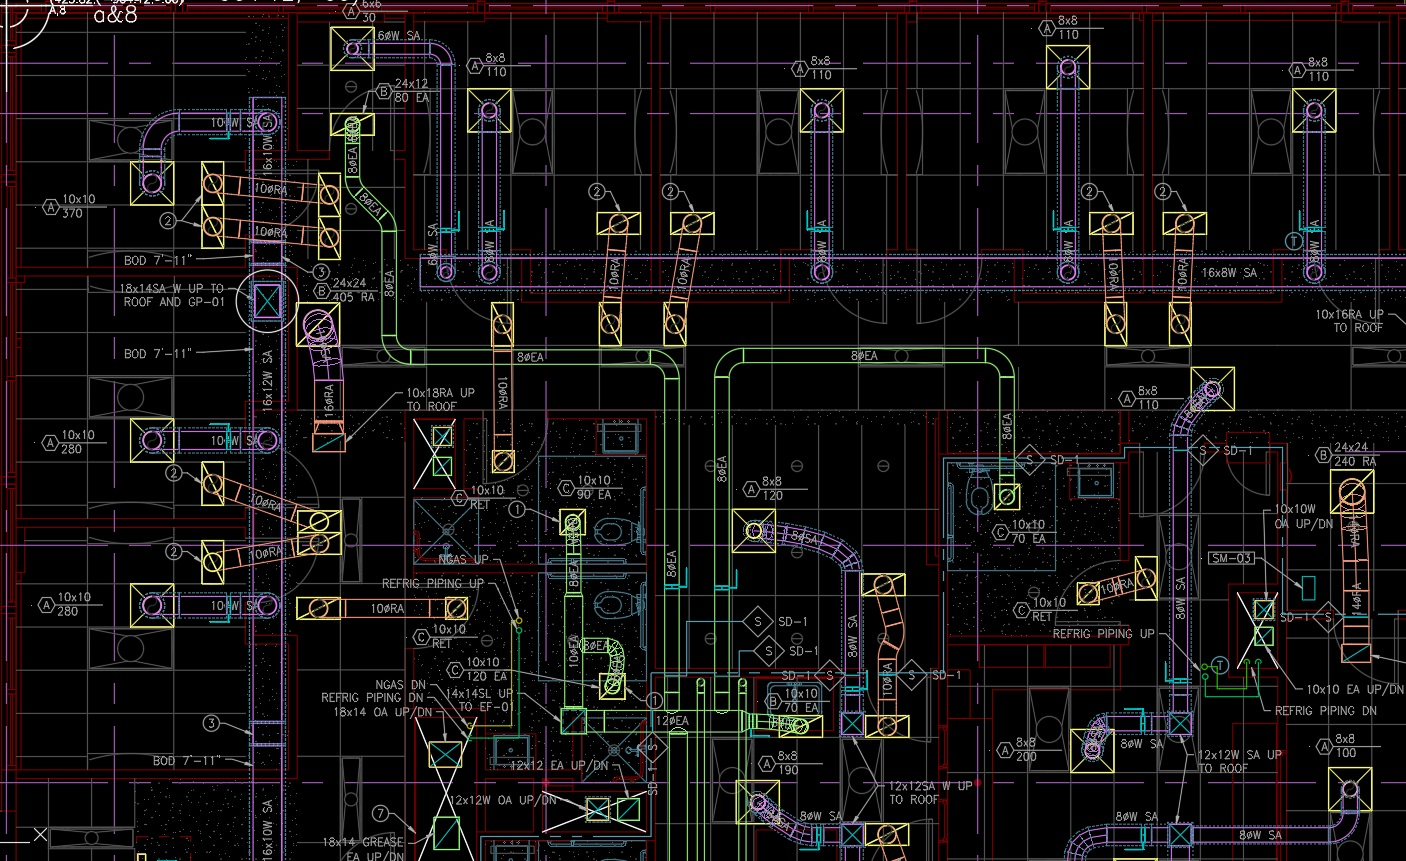 hight resolution of macdonald miller shares what you should really know about facilities design and the mep toolset in autocad autocad blog autodesk